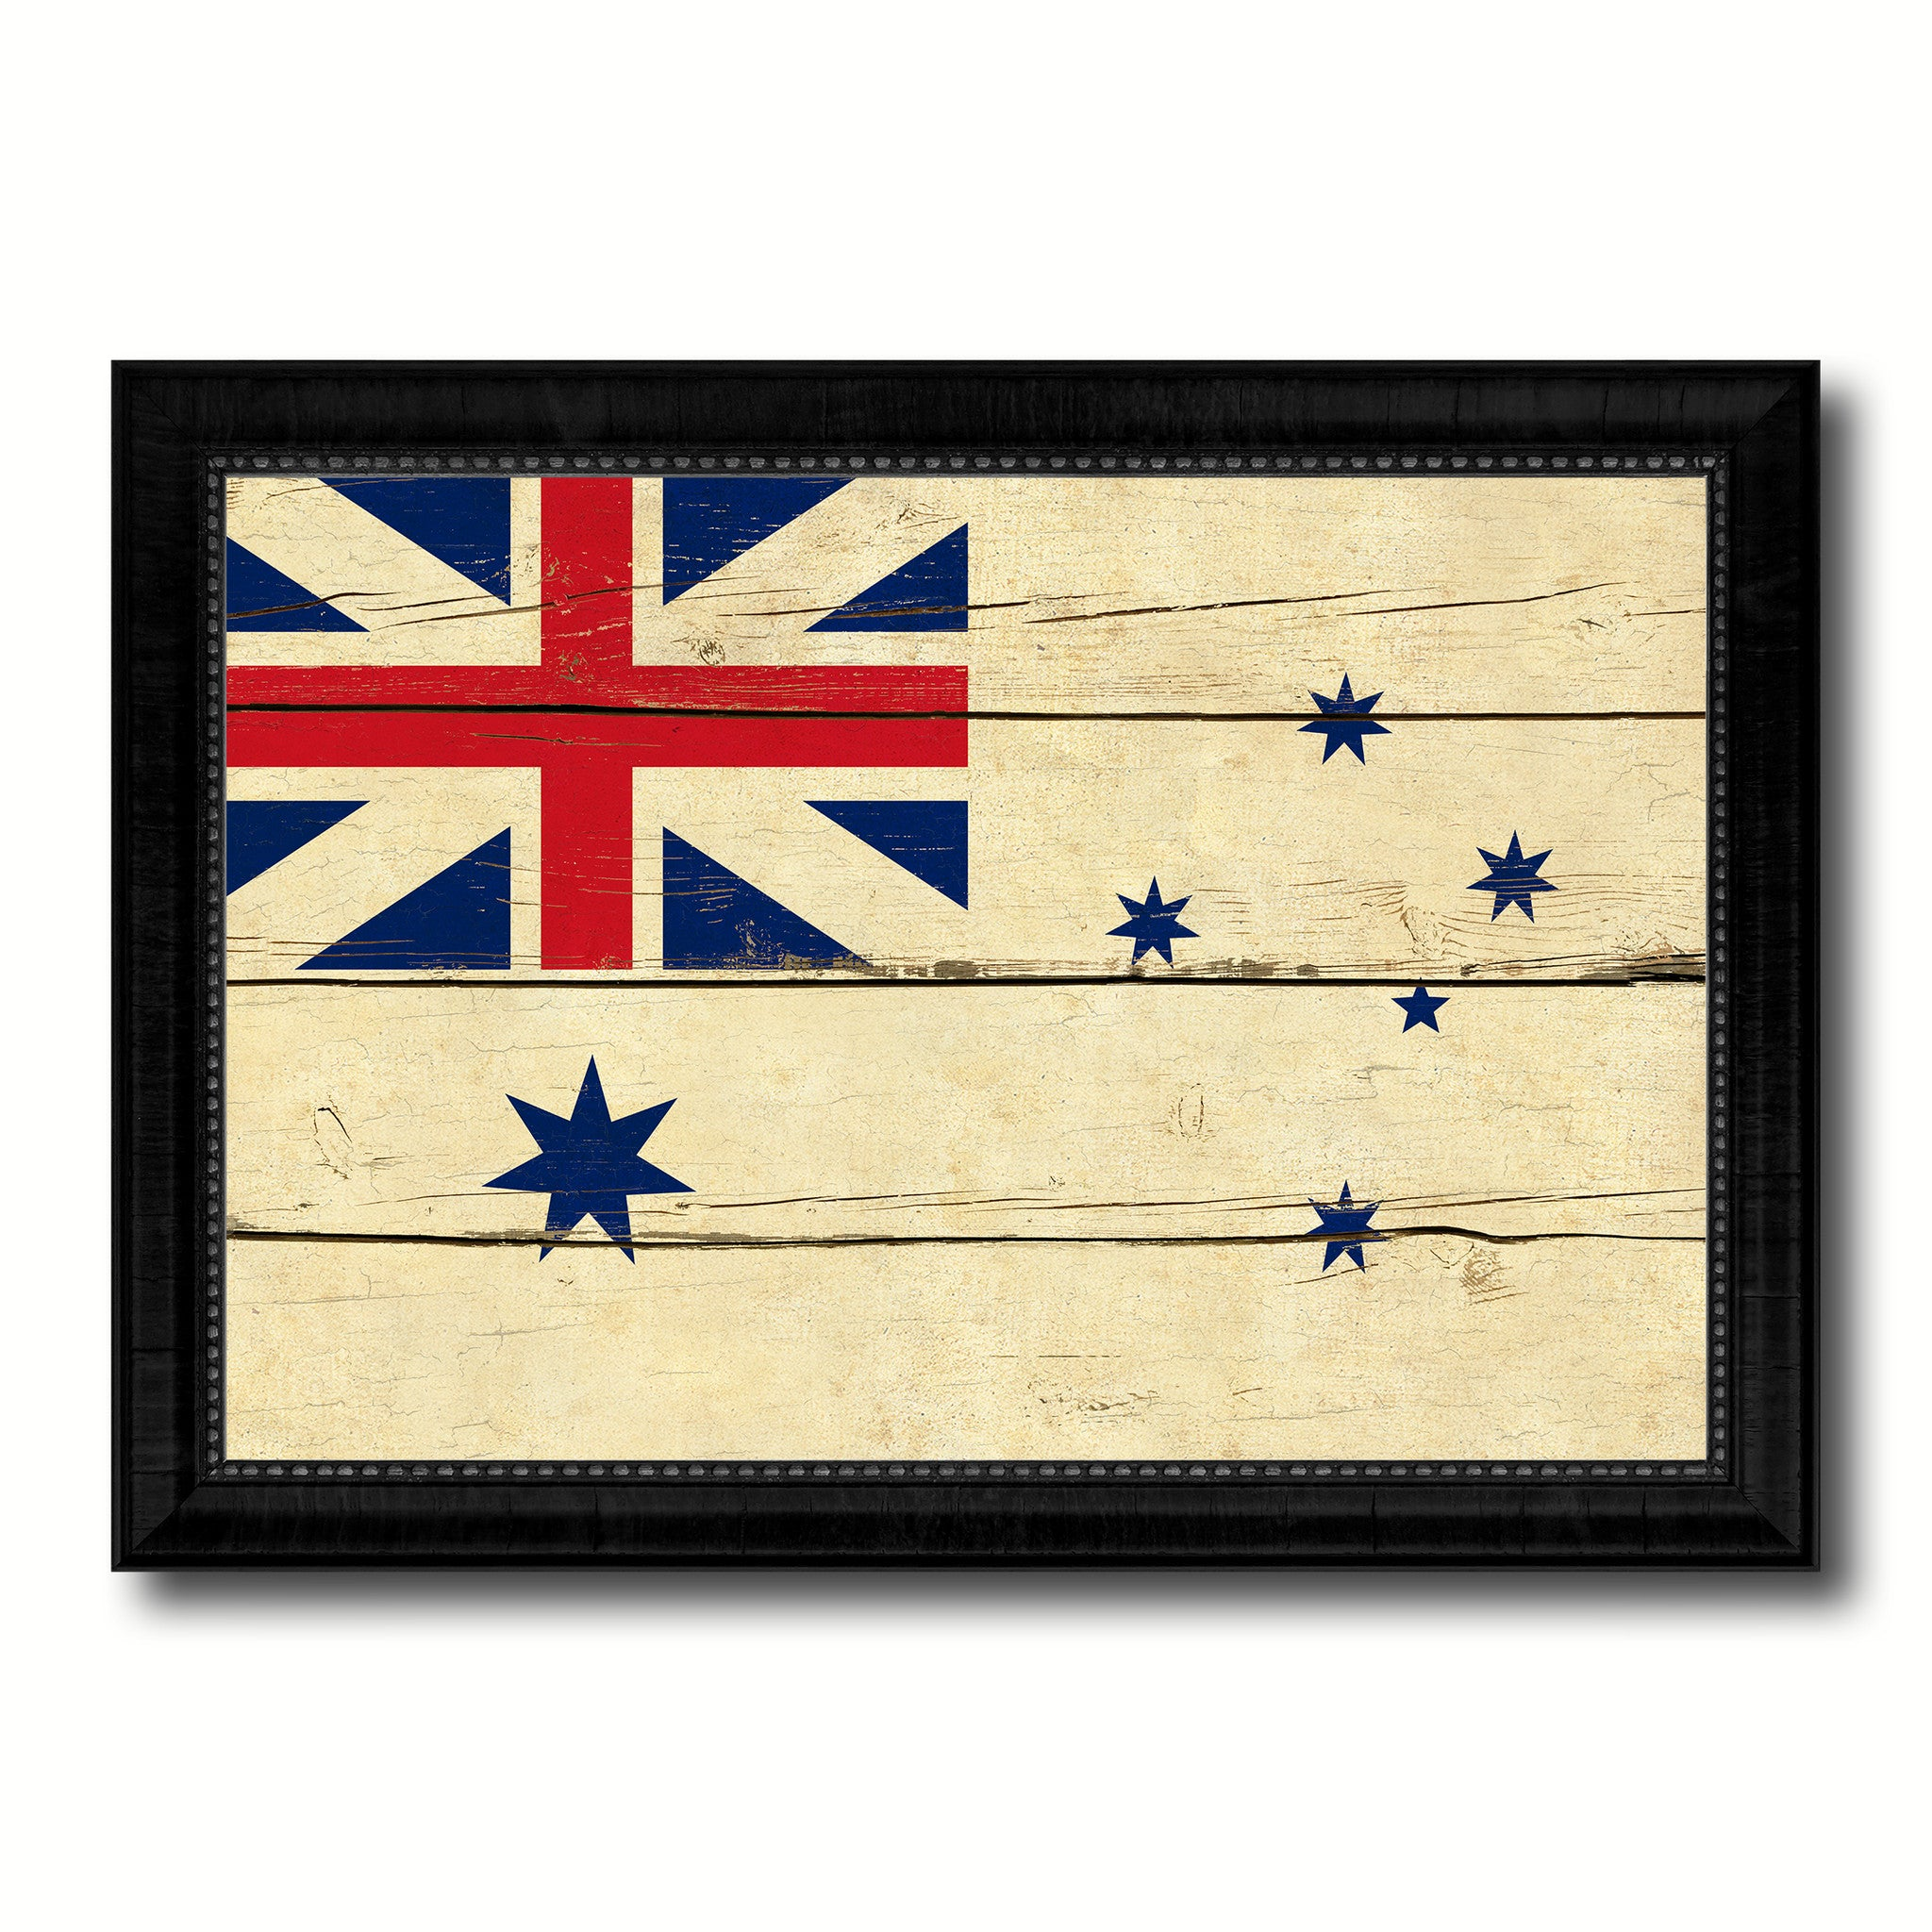 Australian White Ensign City Australia Country Vintage Flag Canvas Print Black Picture Frame